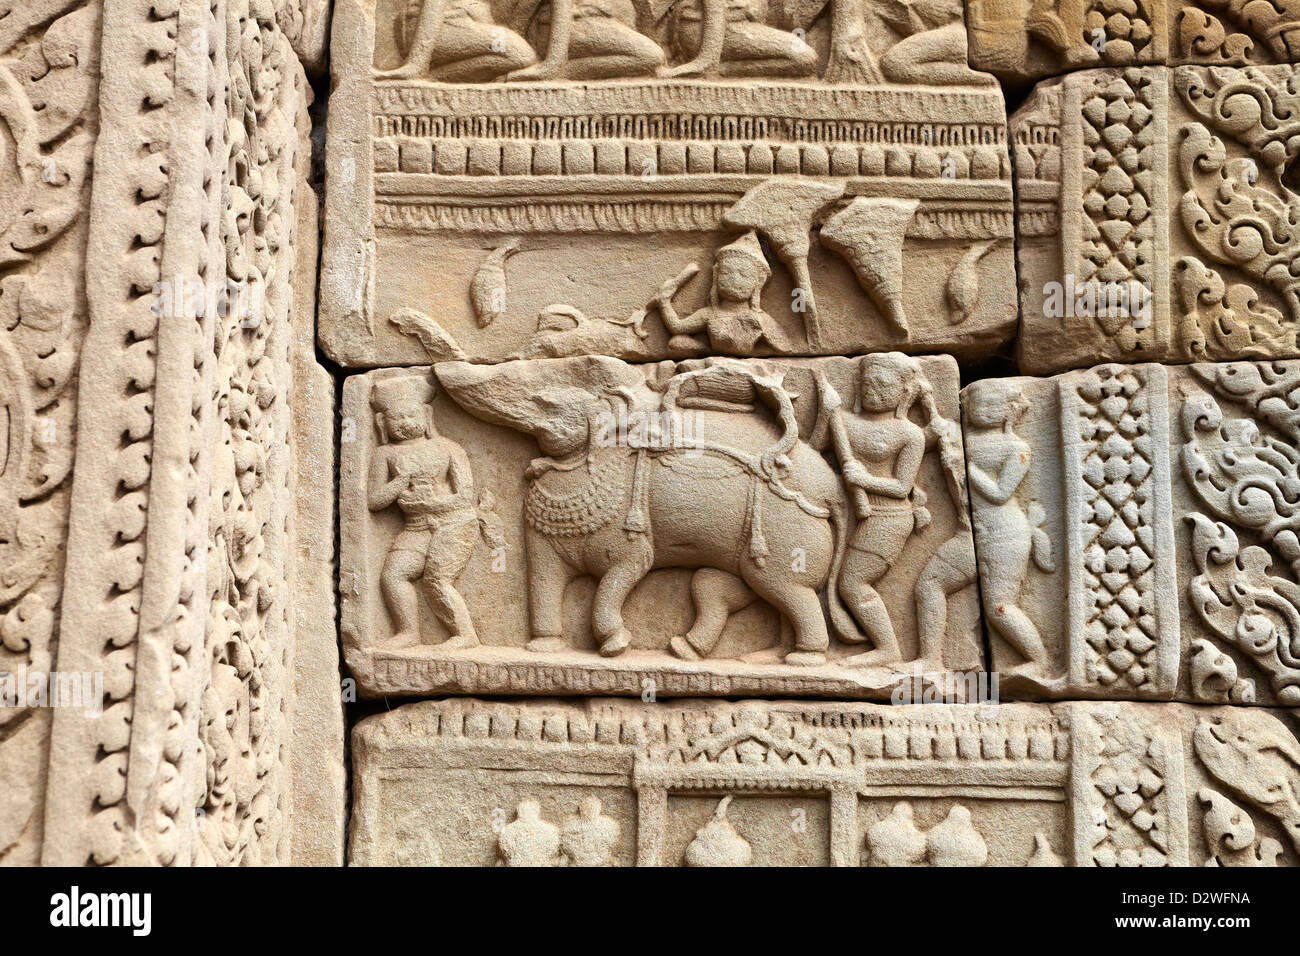 Detail on the wall of Baphuon Temple, Angkor Thom, Cambodia, Asia - Stock Image